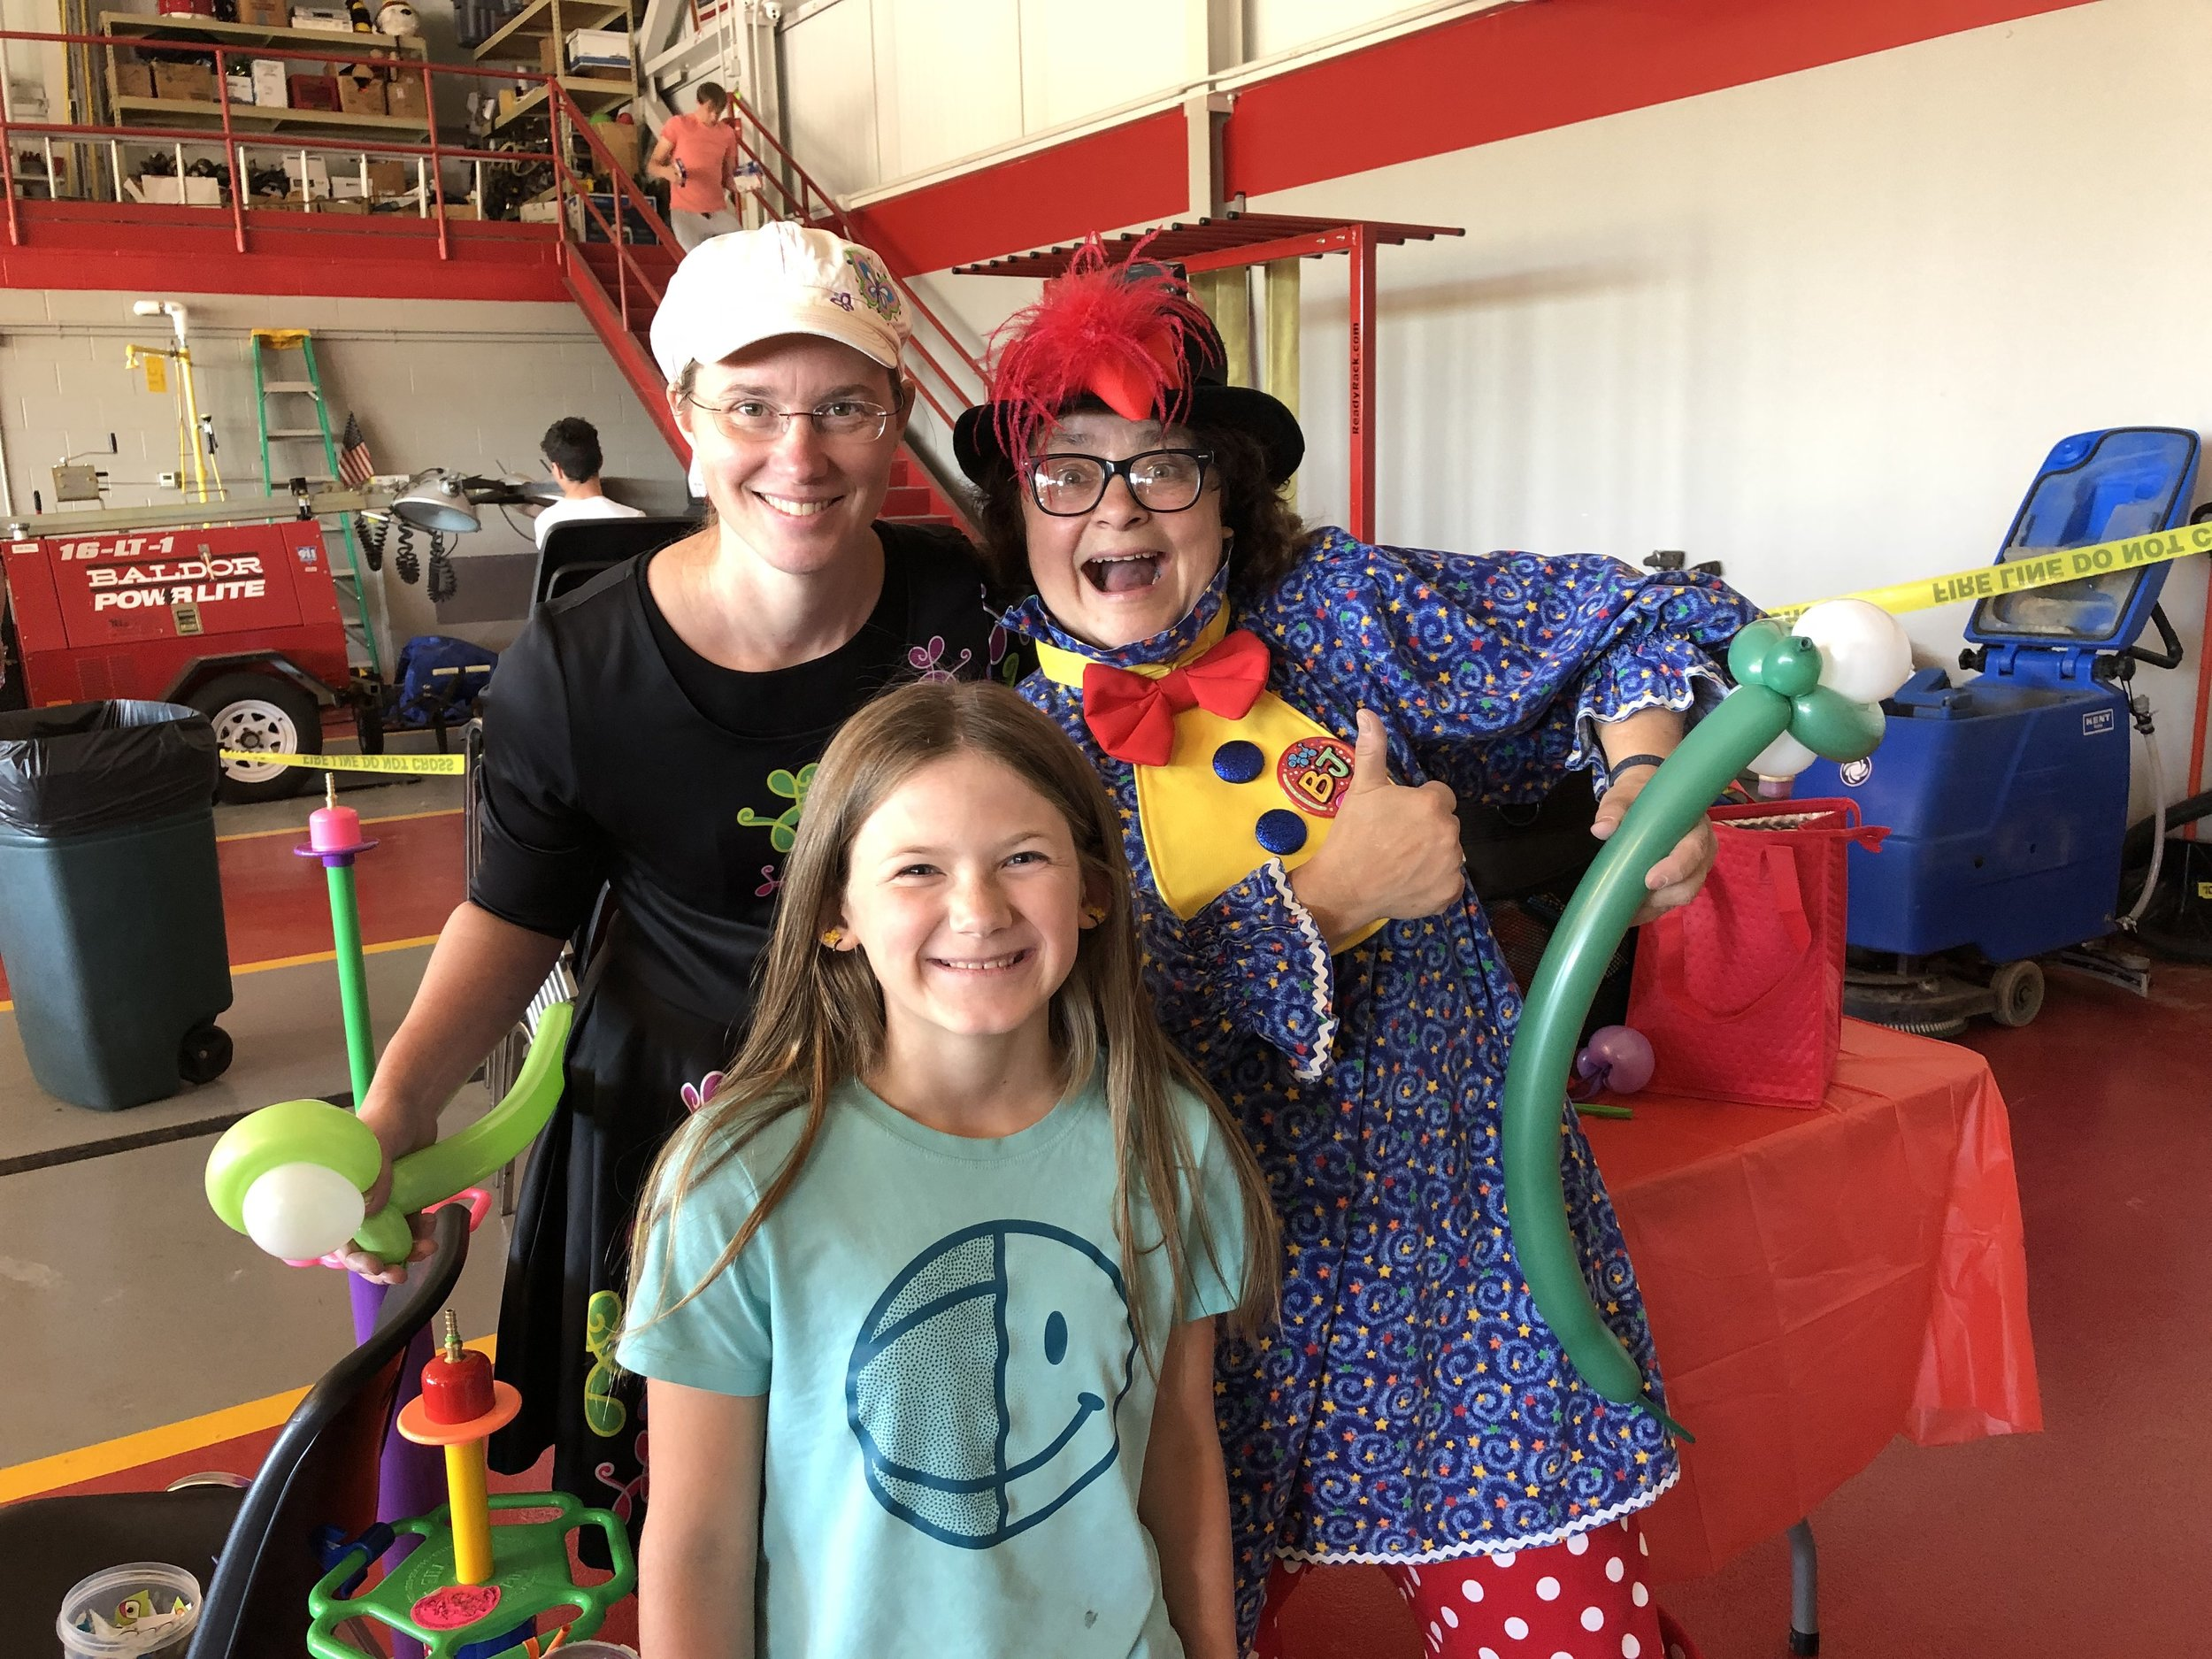 Flutterbug the Clown, a skilled face painter and entertainer, was joined this year by a new clown, BJ. With them Saturday at their booth inside the fire station was their new friend Pailin Hample, who served up a great smile for the Free Press photographer.